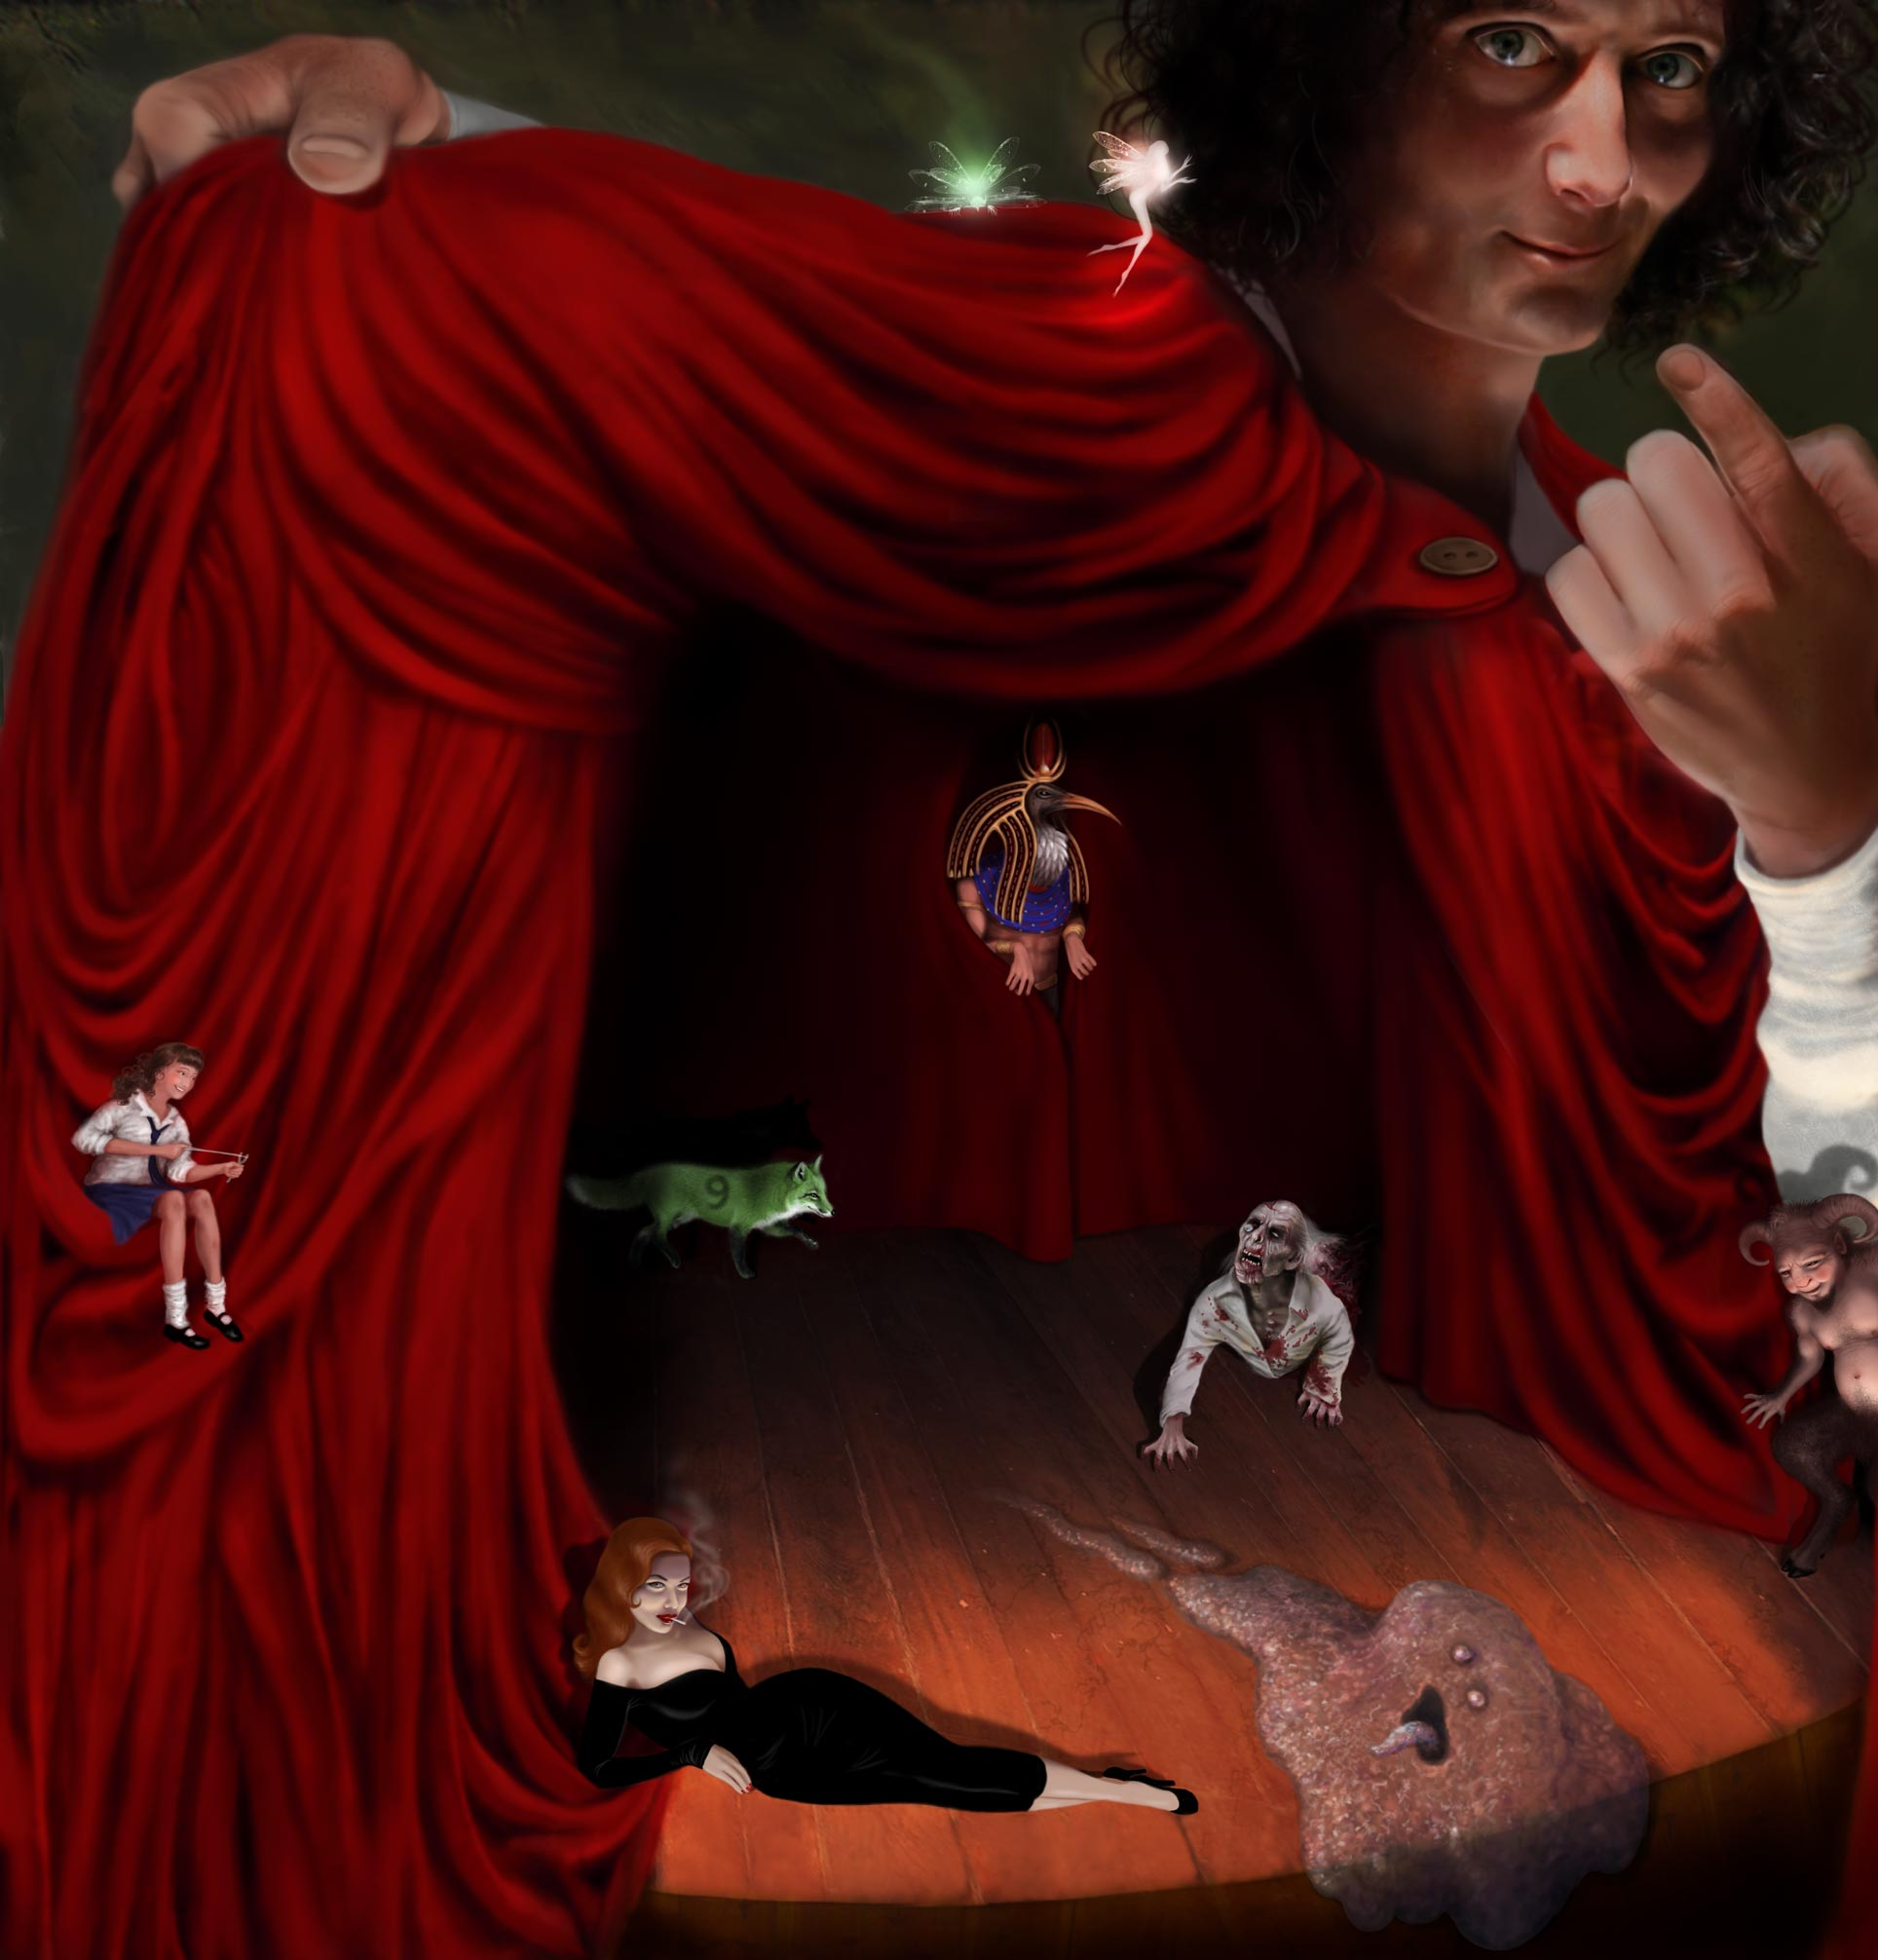 Illustration of Jasper pulling back curtain on a stage of horrors and curiousities